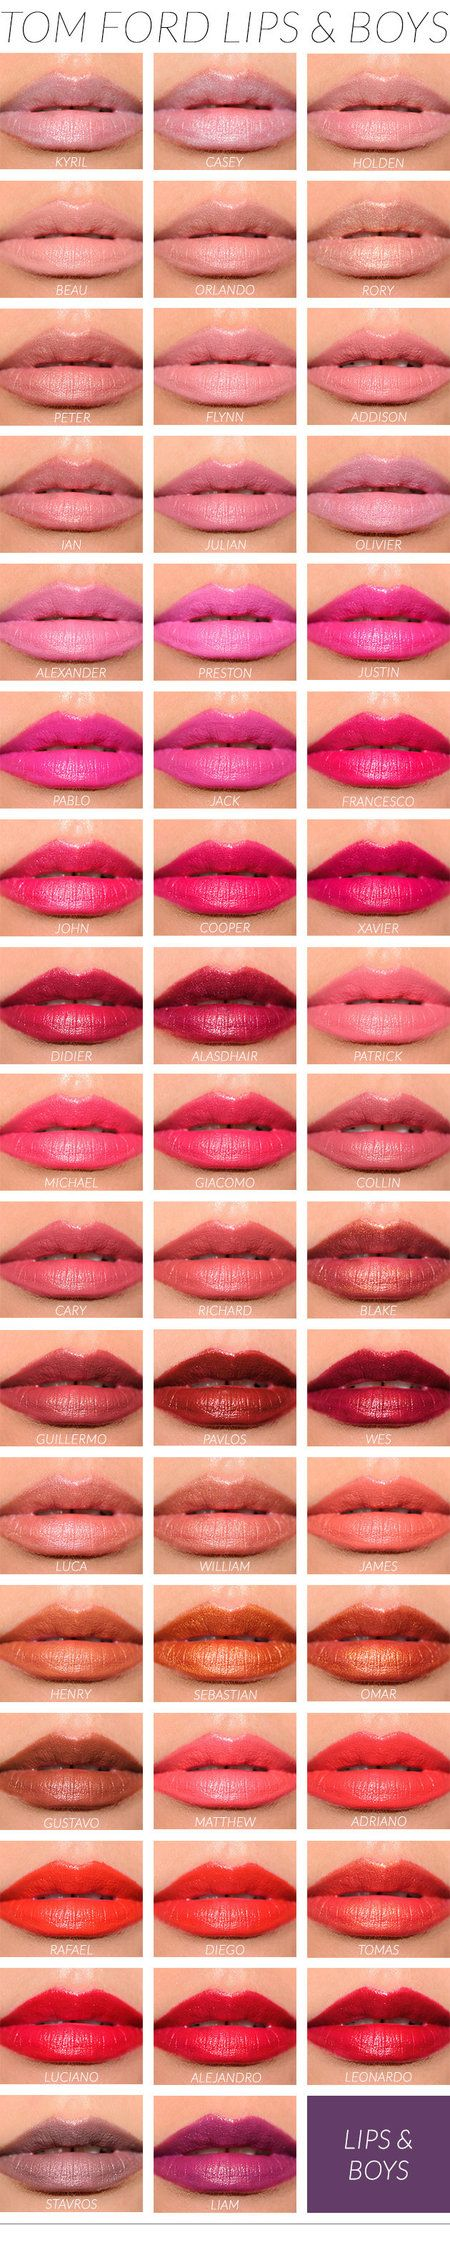 50 tom ford lips boys swatches via temptalia lips lipstick. Cars Review. Best American Auto & Cars Review